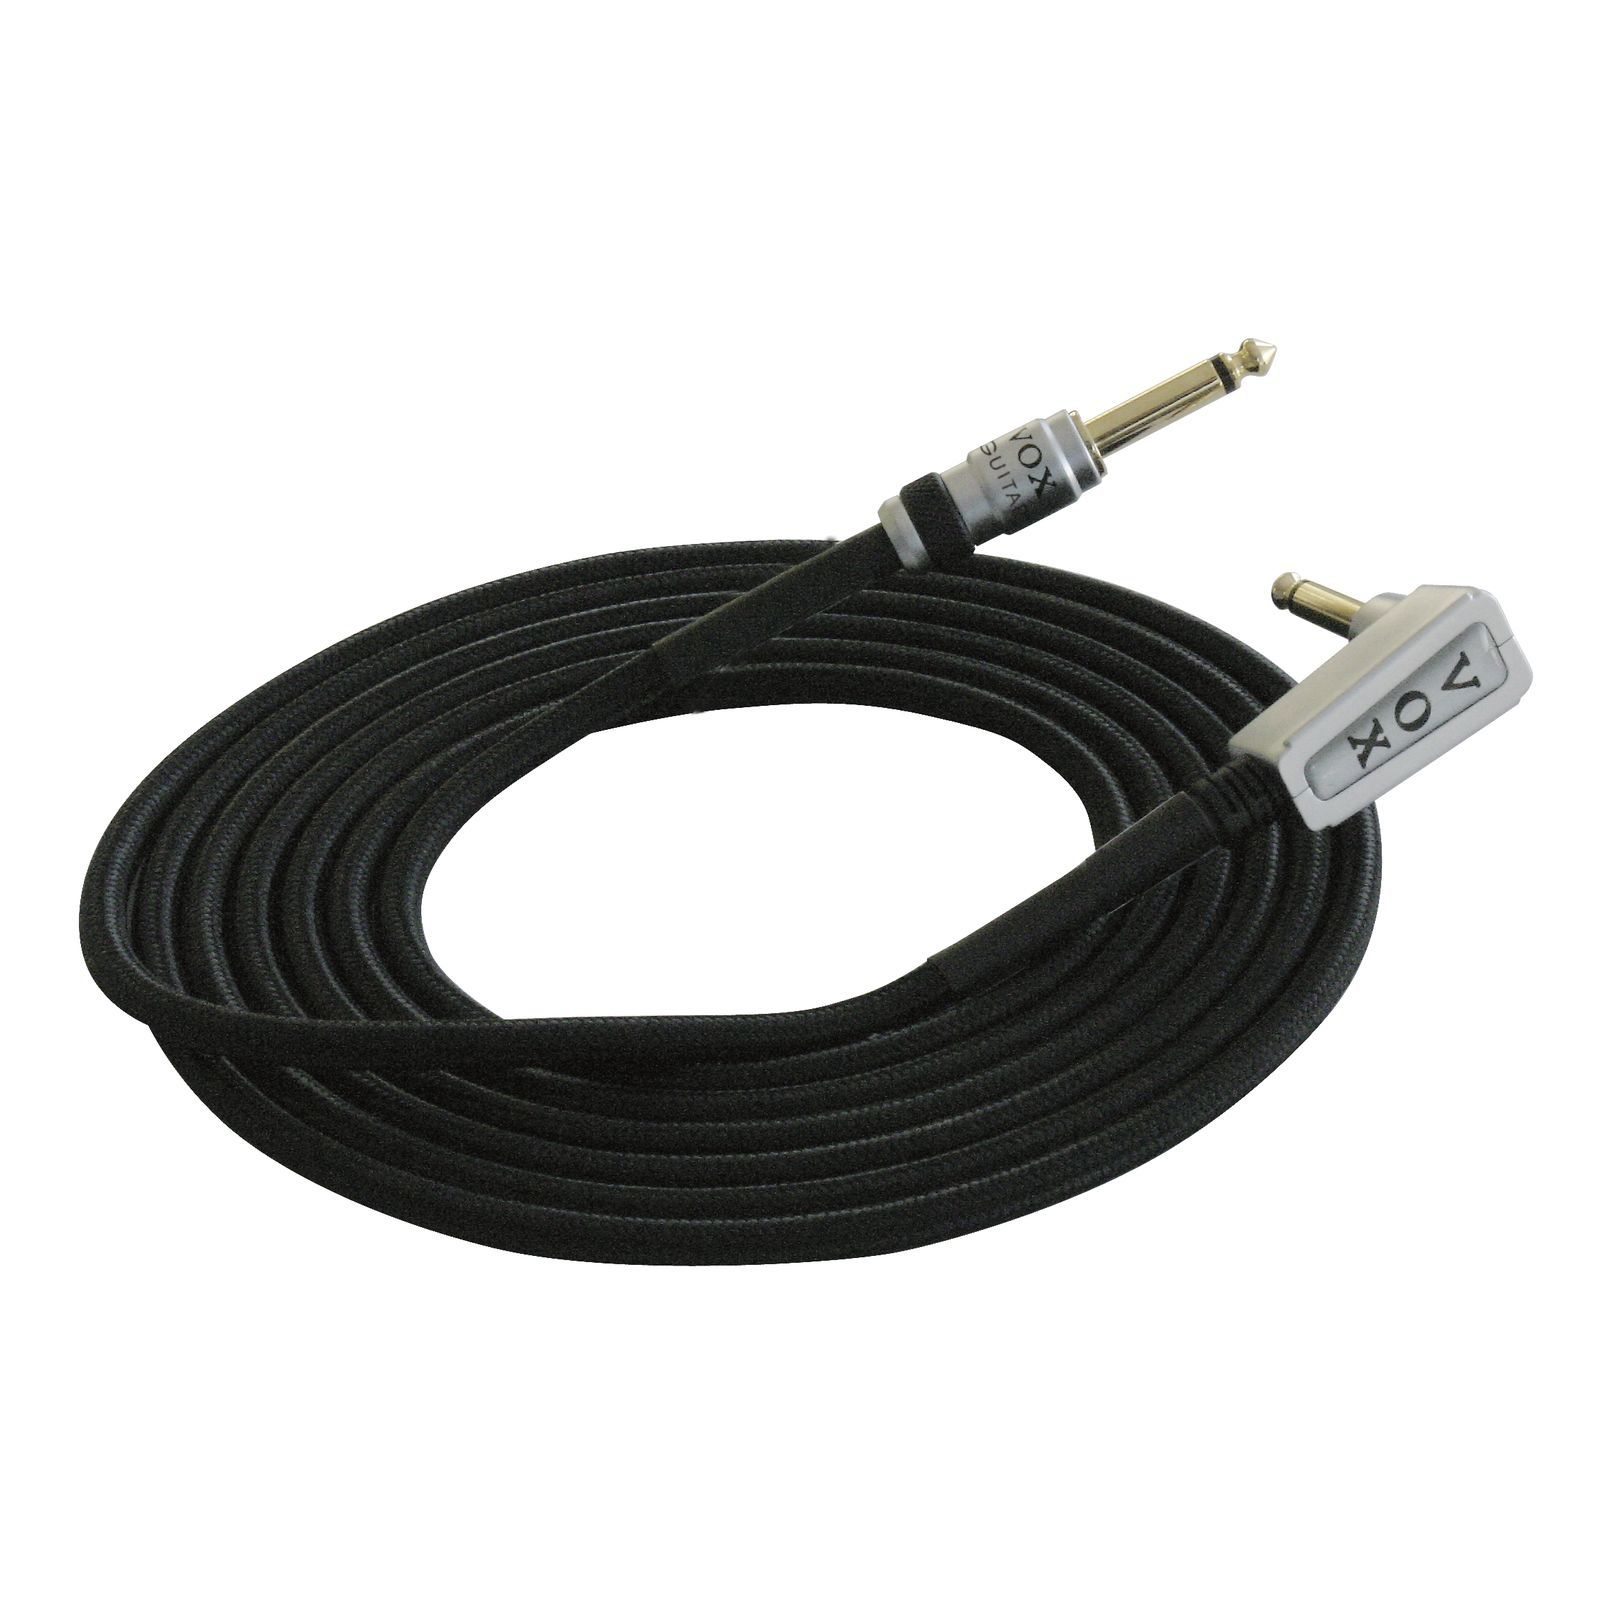 VOX Electric Guitar Cable VGC19 BK Black 6m Produktbillede